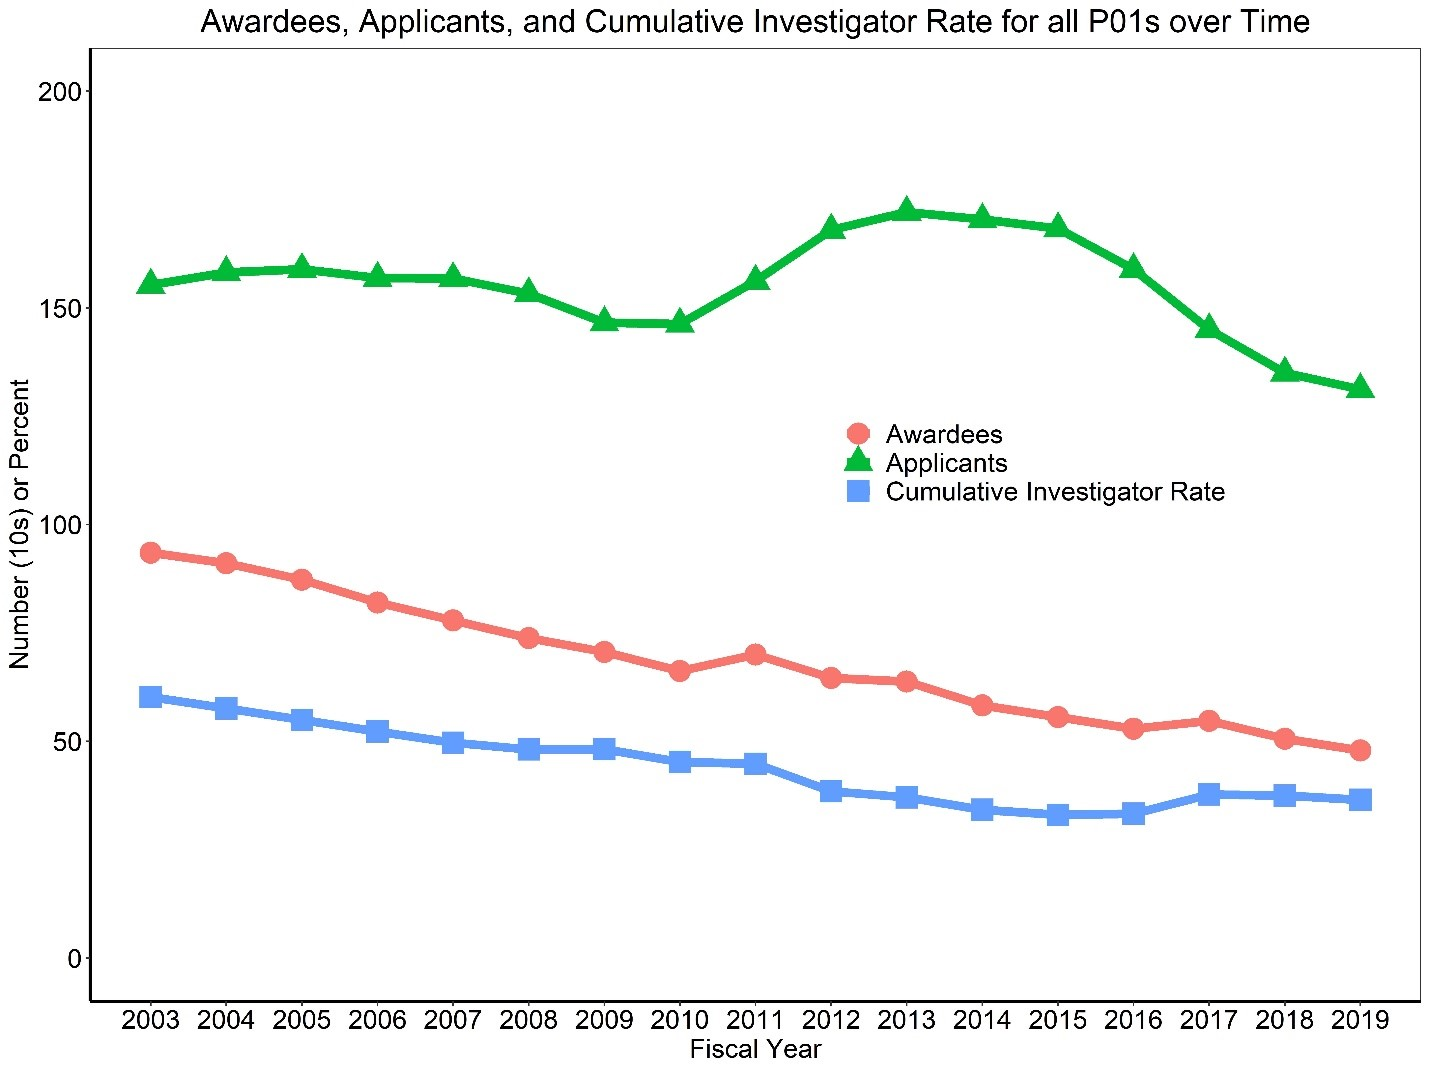 Figure 3 shows a line graph with applicants, awardees, and the Cumulative Investigator Rate for P01s over time. The X axis is fiscal years 2003 to 2019, while the Y axis is either the absolute number (in tens) for applicants and awardees or a percent for the Cumulative Investigator Rate from 0 to 100. Awardees, applicants, and the Cumulative Investigator Rate are shown in separate red circle, green triangle, and blue square lines, respectively.